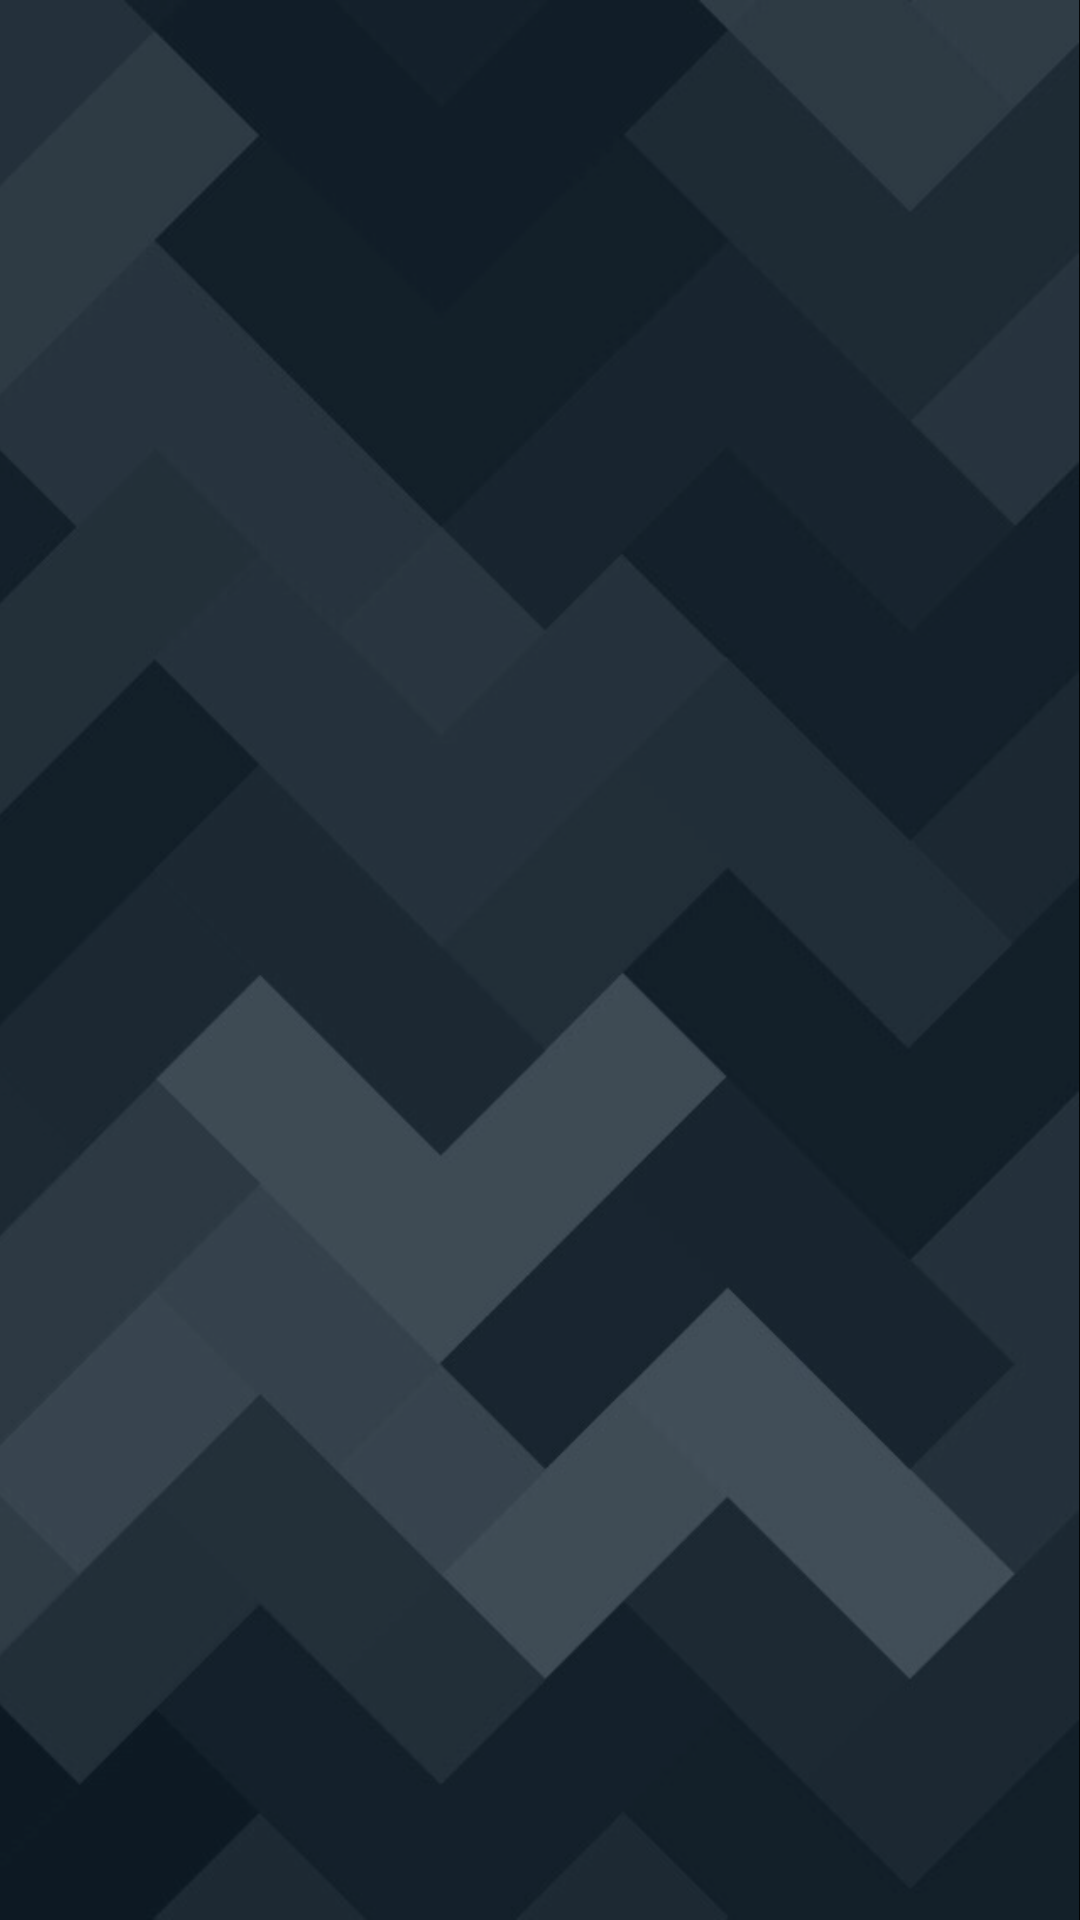 Simple Black & Grey Shapes Pattern. Tap to see more